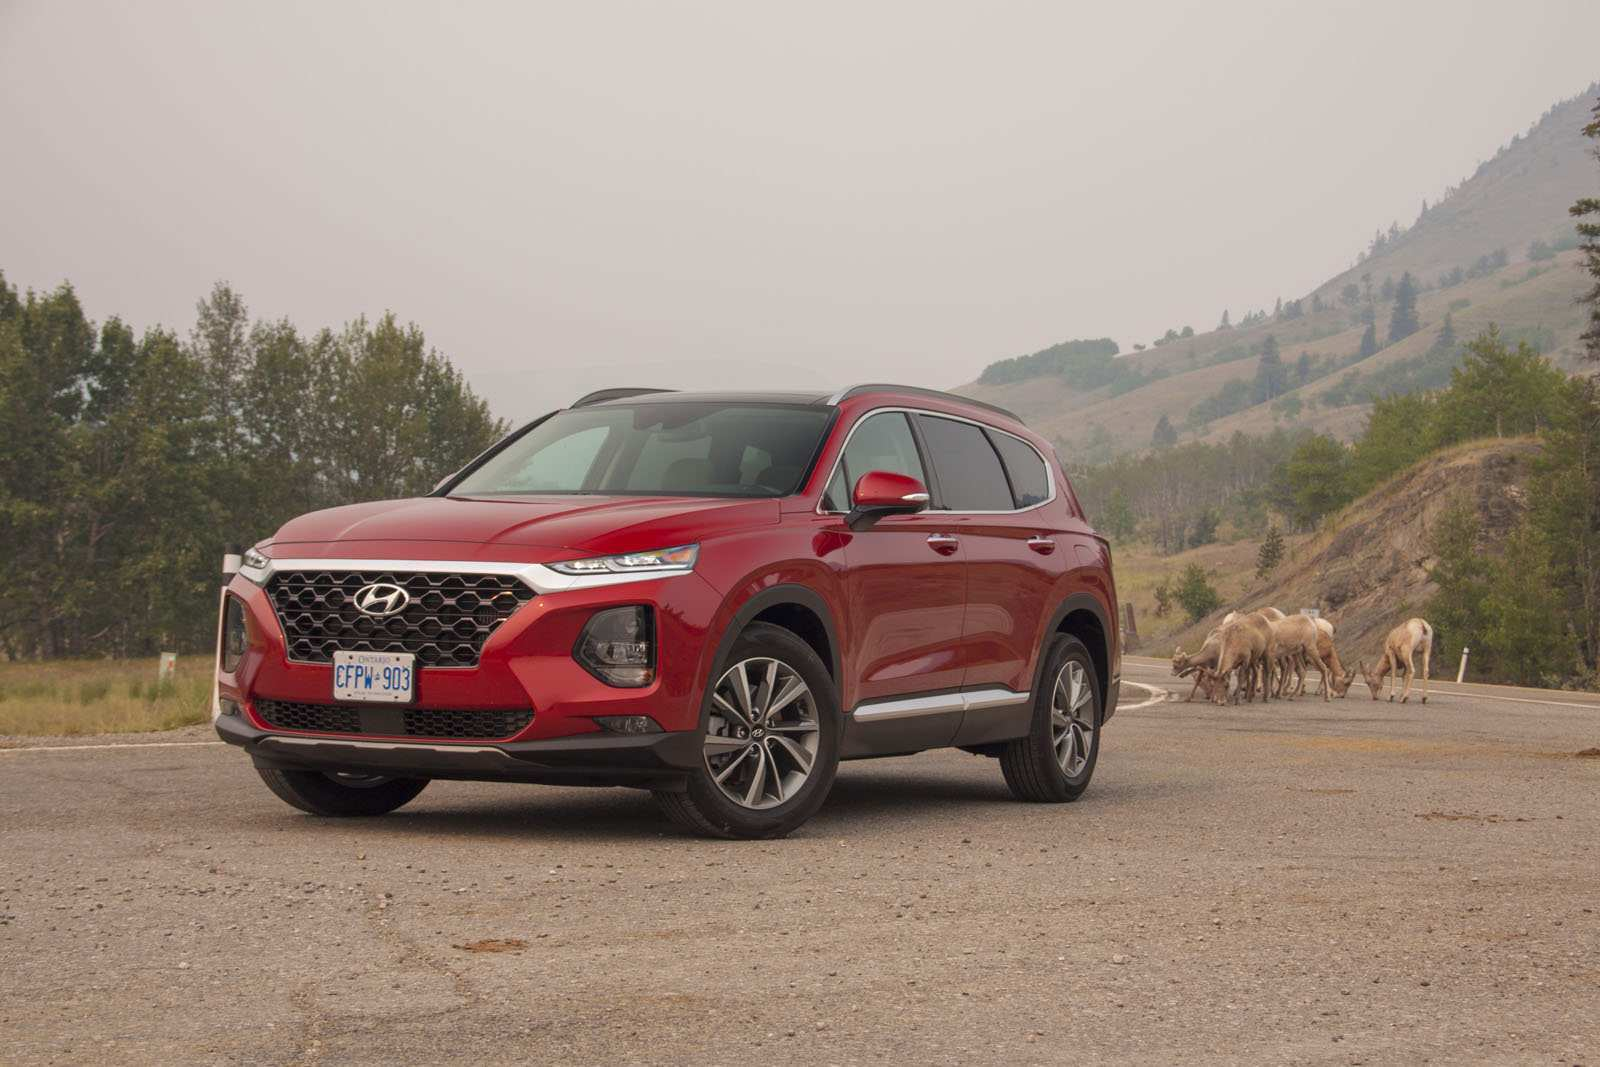 47 New 2019 Hyundai Santa Fe Test Drive Ratings for 2019 Hyundai Santa Fe Test Drive